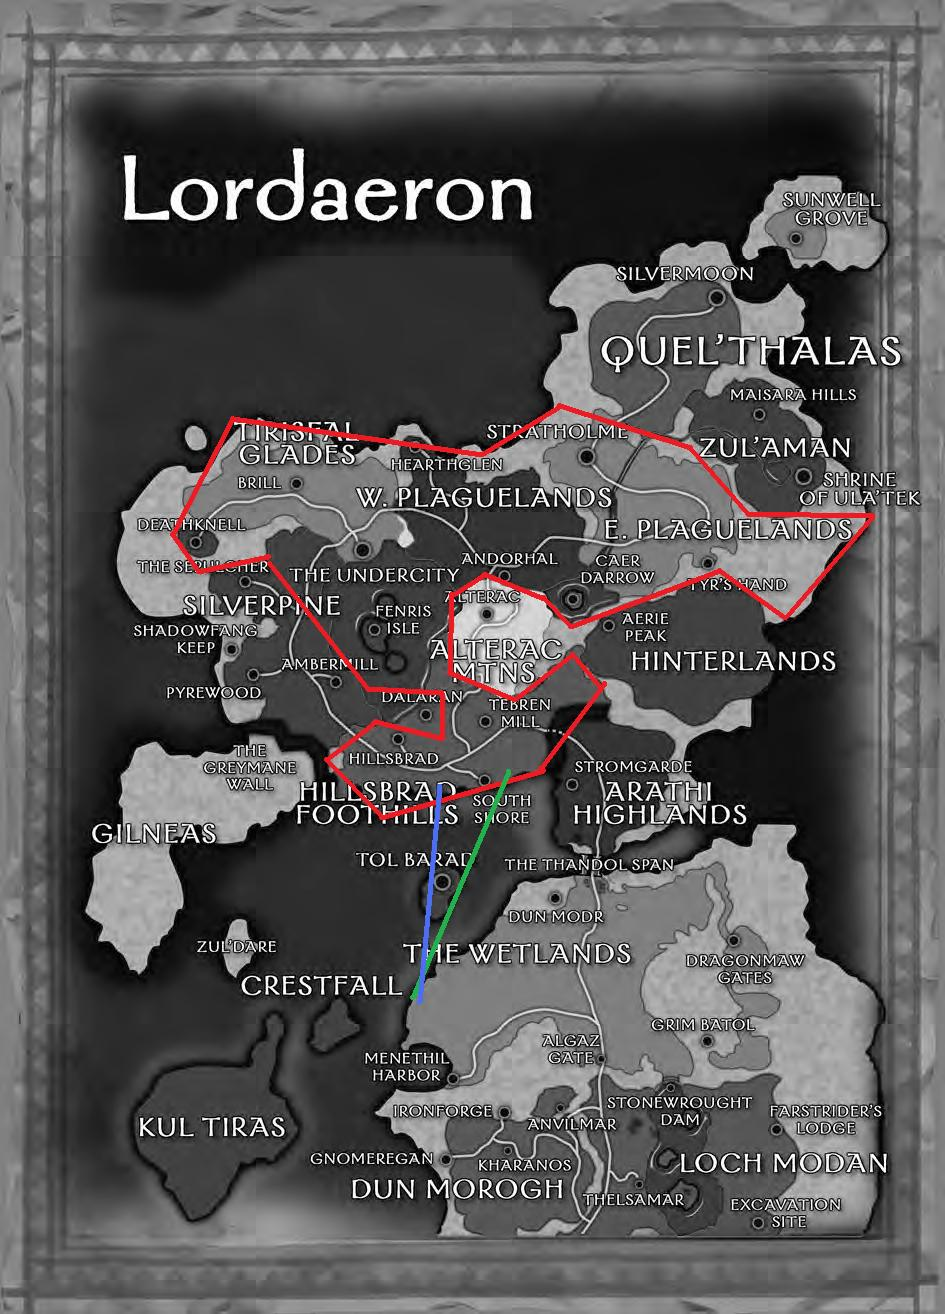 Talkhasic wowwiki fandom powered by wikia same as above this time using a map made long after day of the dragon for the rpg and wow manual redline respresents borders of the kingdom gumiabroncs Choice Image